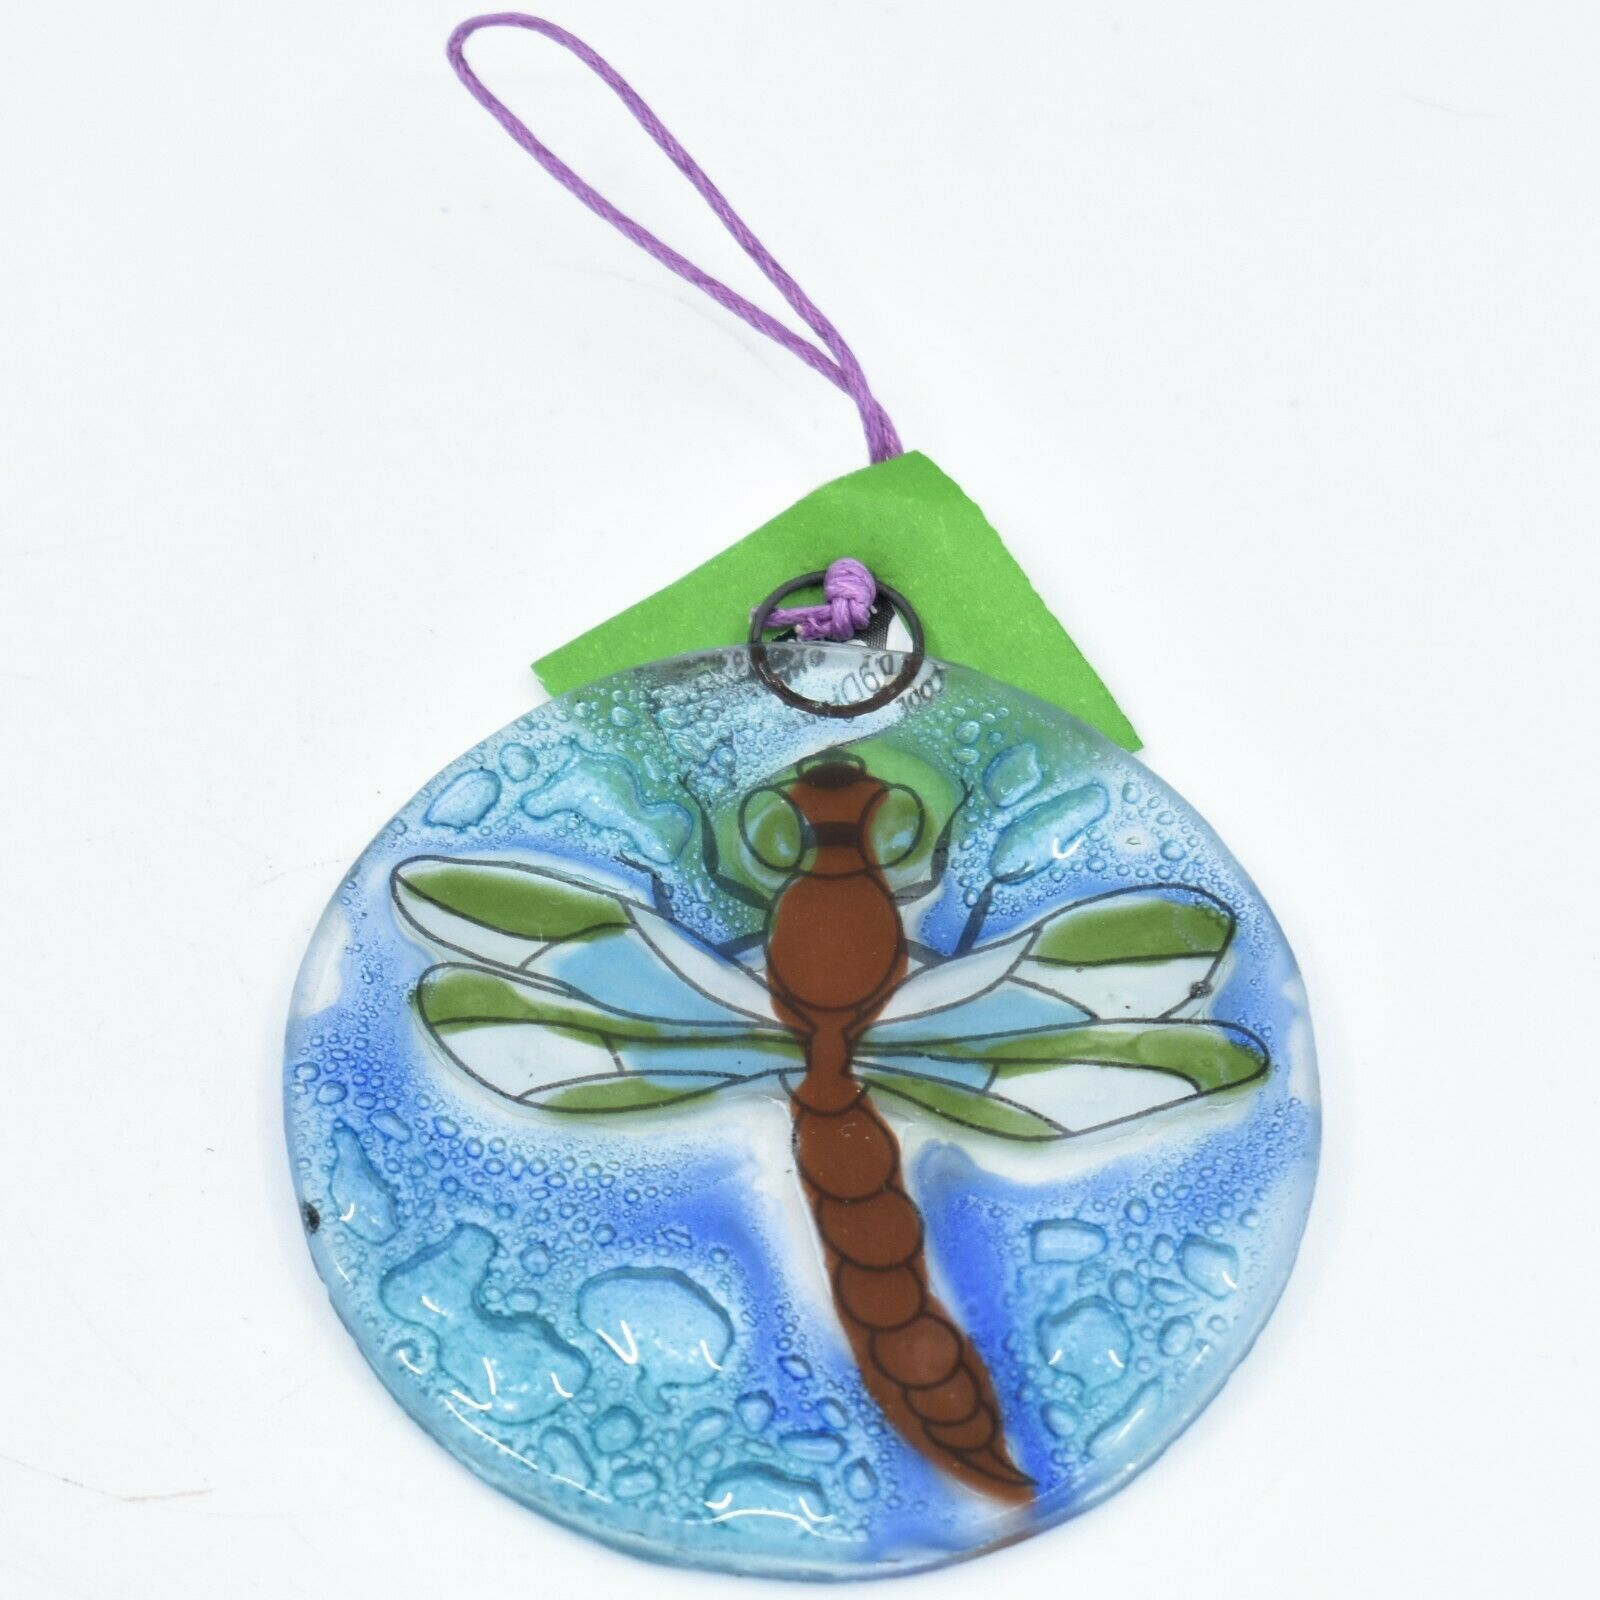 Dragonfly Insect Fused Art Glass Ornament Sun Catcher Handmade Ecuador